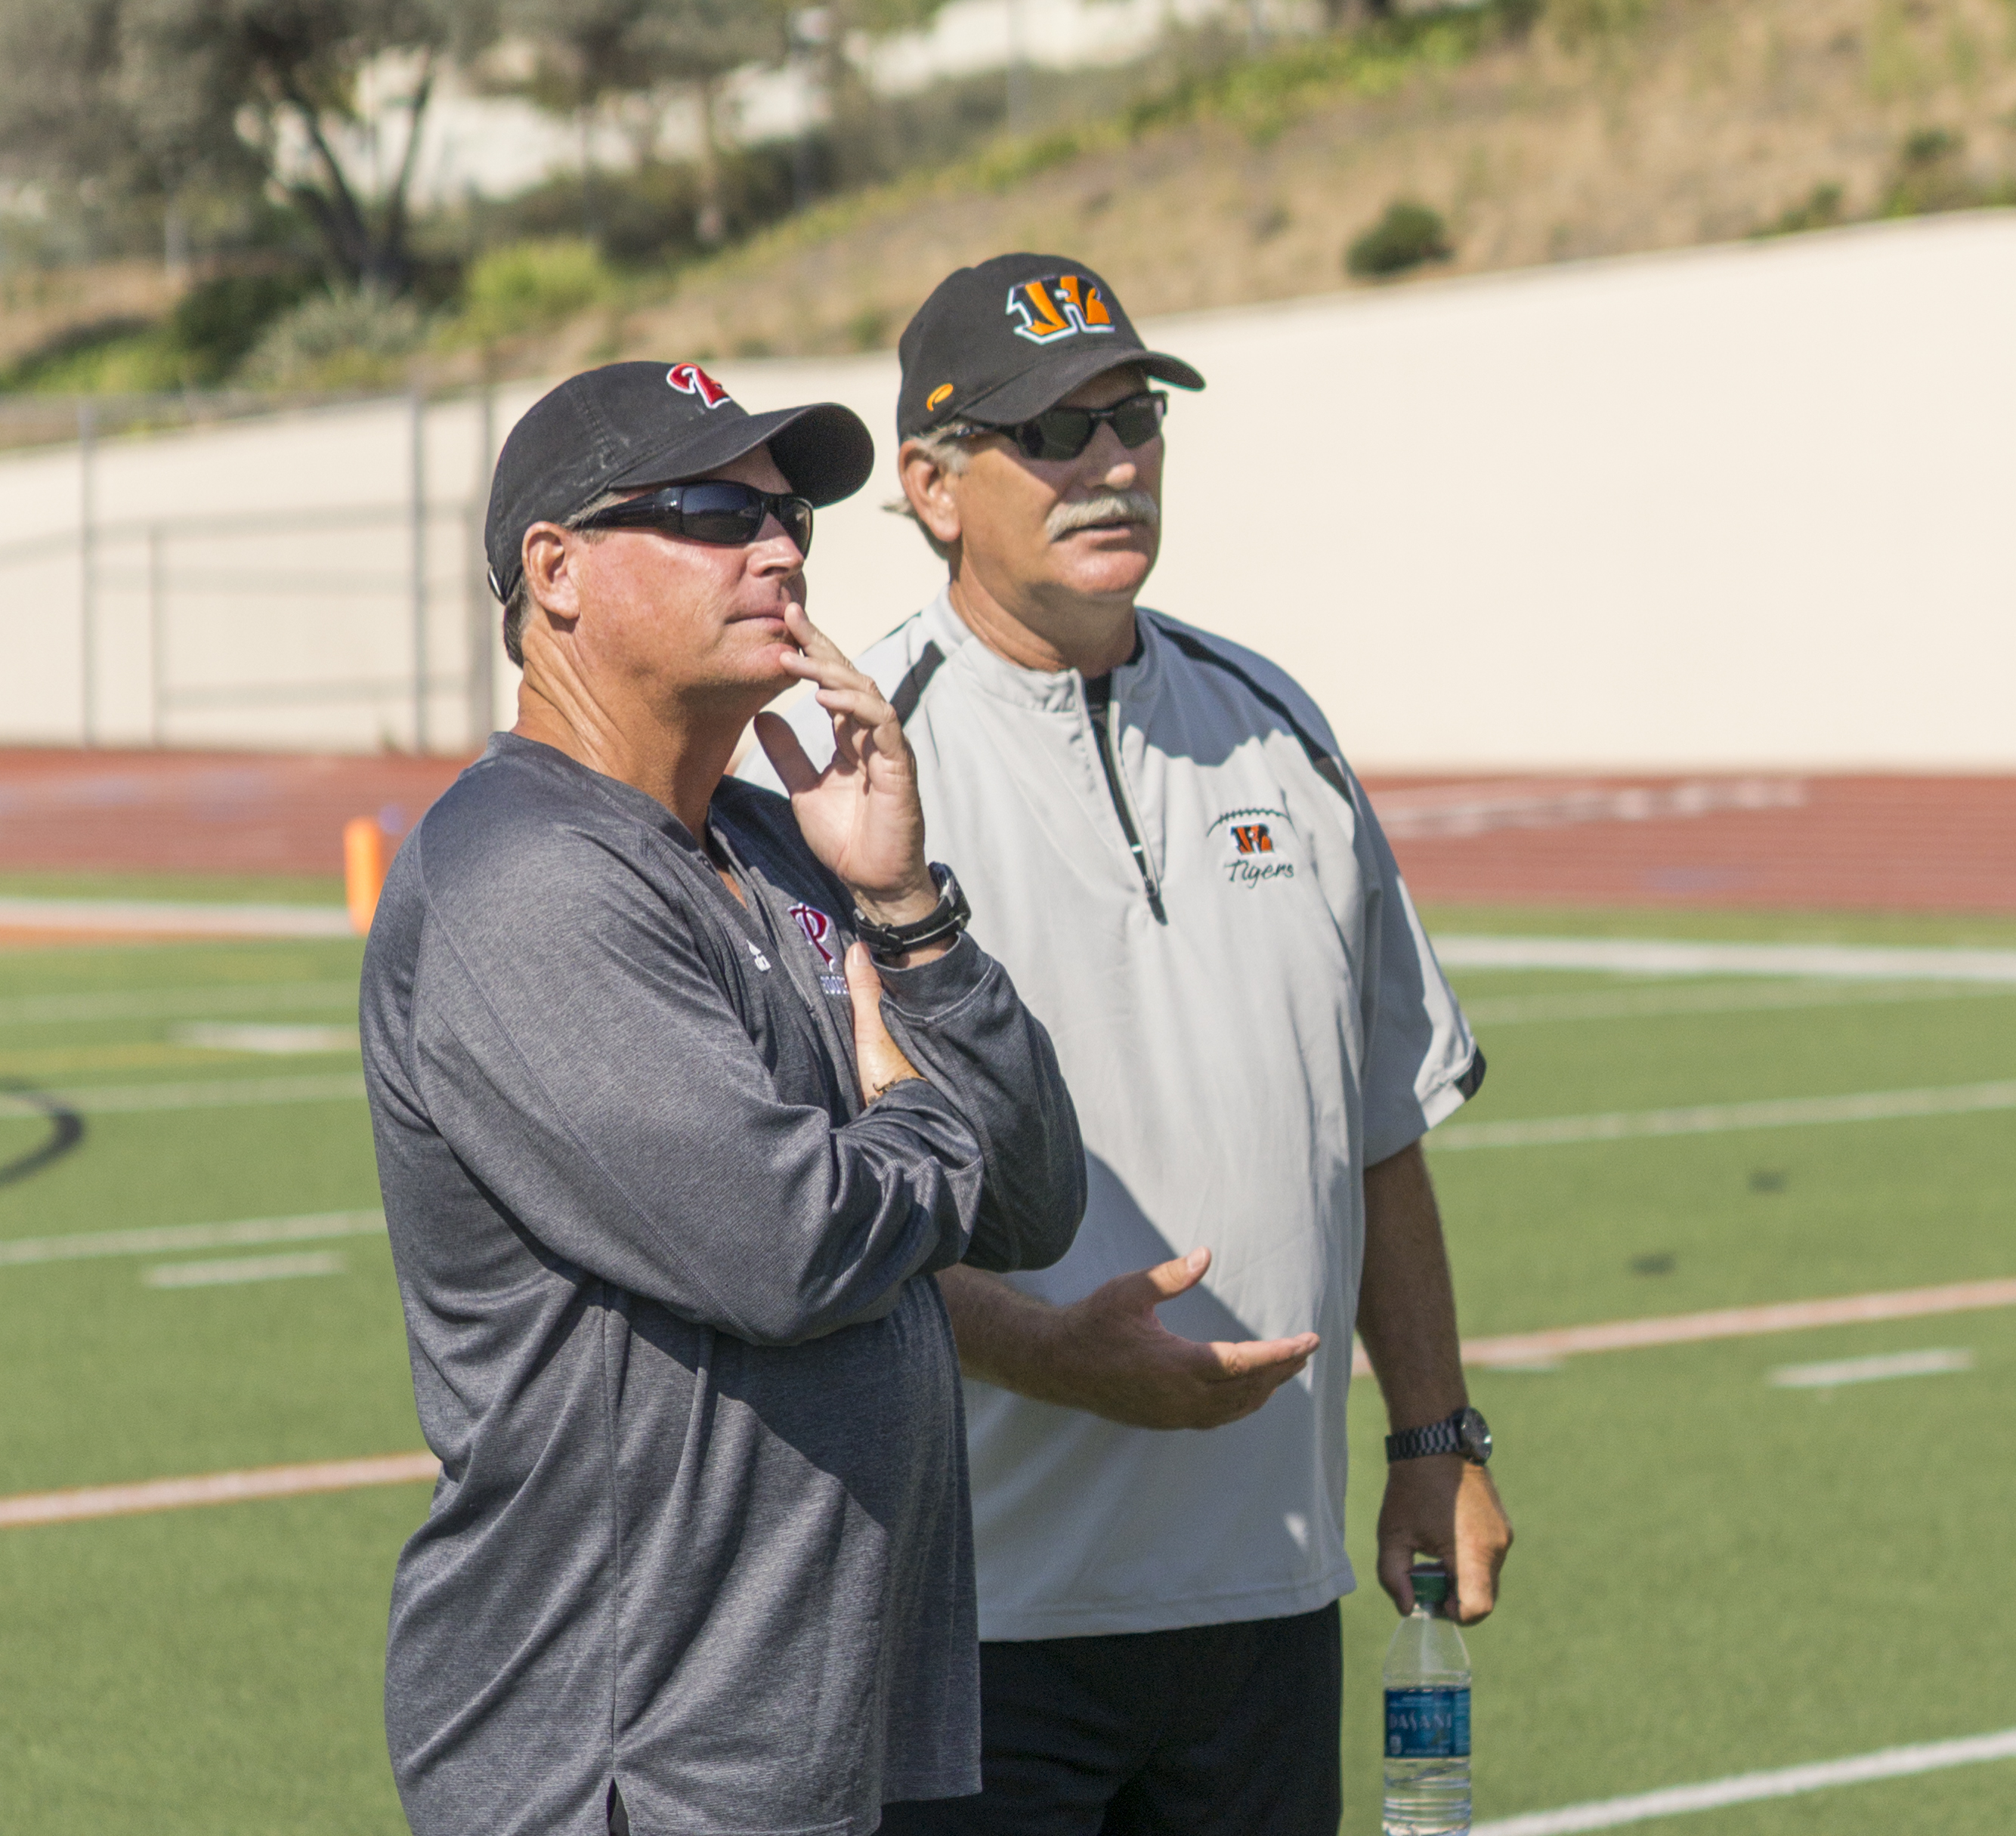 Palomar coach Joe Early (left) and Riverside City College coach Tom Craft (right) (Craft was head coach of the Comets from 1983-2000) watch as their teams go through warm-ups prior to the scrimmage. The Comets hosted the visiting Tigers in a scrimmage held Aug 27 at Wilson Stadium in Escondido High School. The Comets open the season at home on Sept 3 at 6pm in a non-conference game against Southwestern.